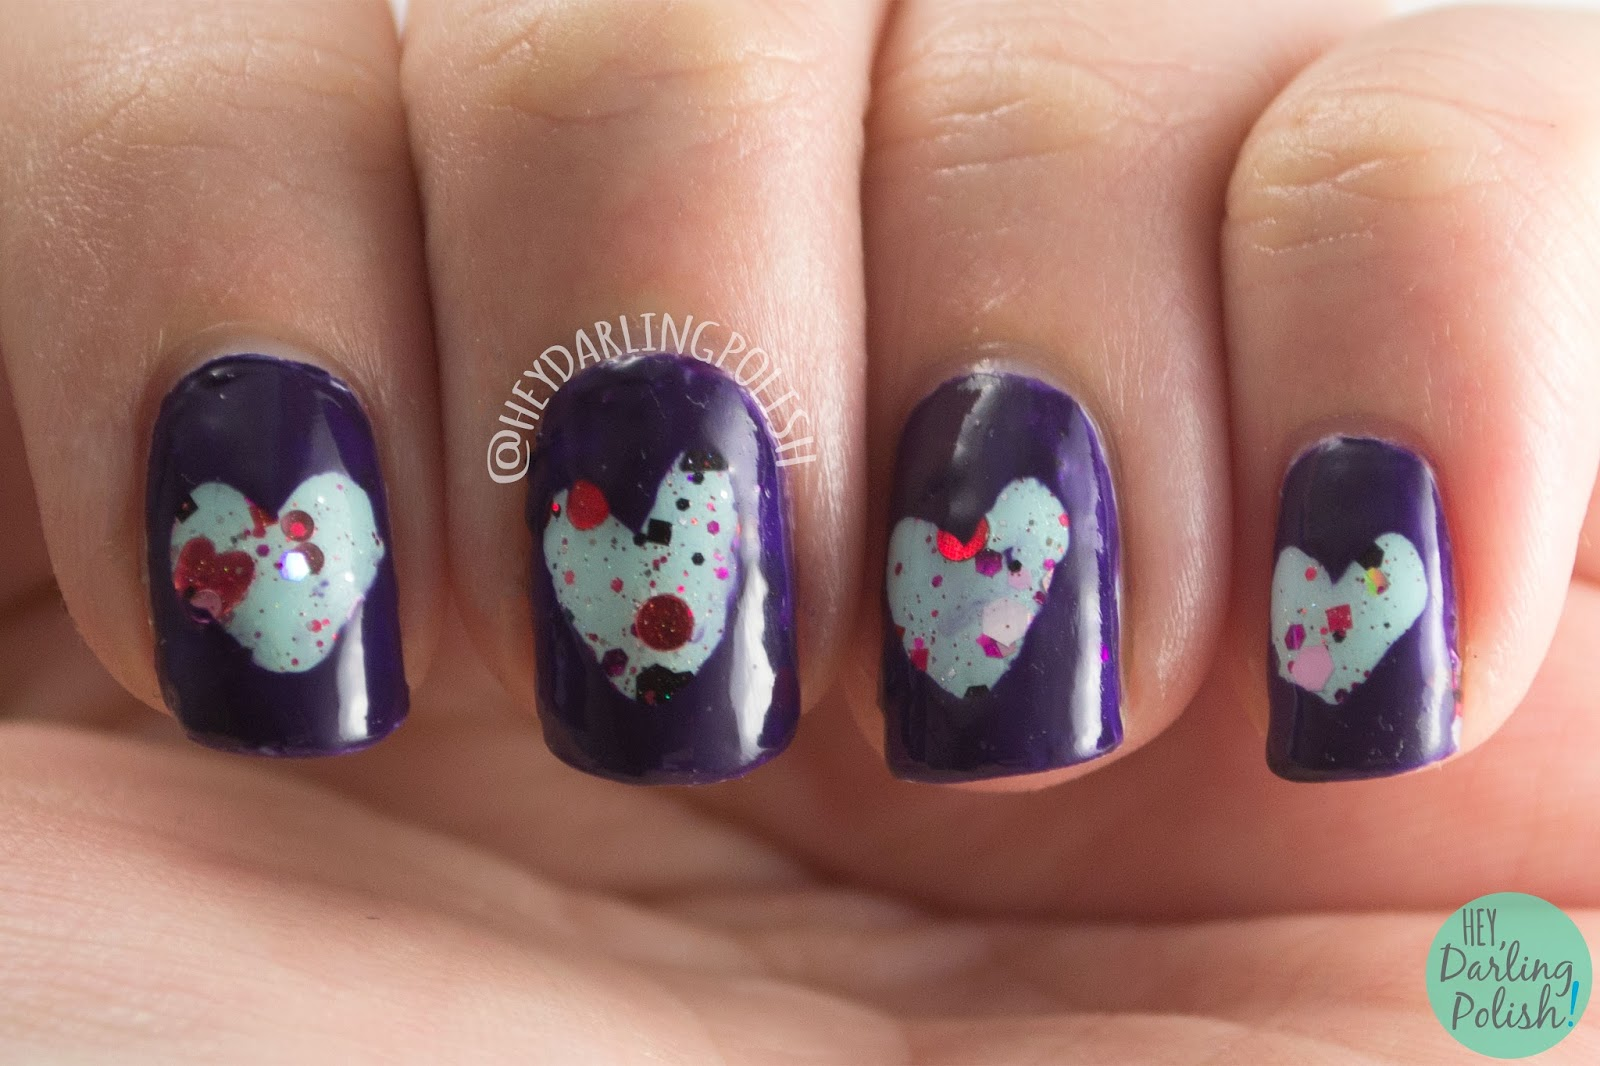 shot through the heart, heart, purple, blue, glitter, nails, nail art, nail polish, hey darling polish, ice polish, indie polish,